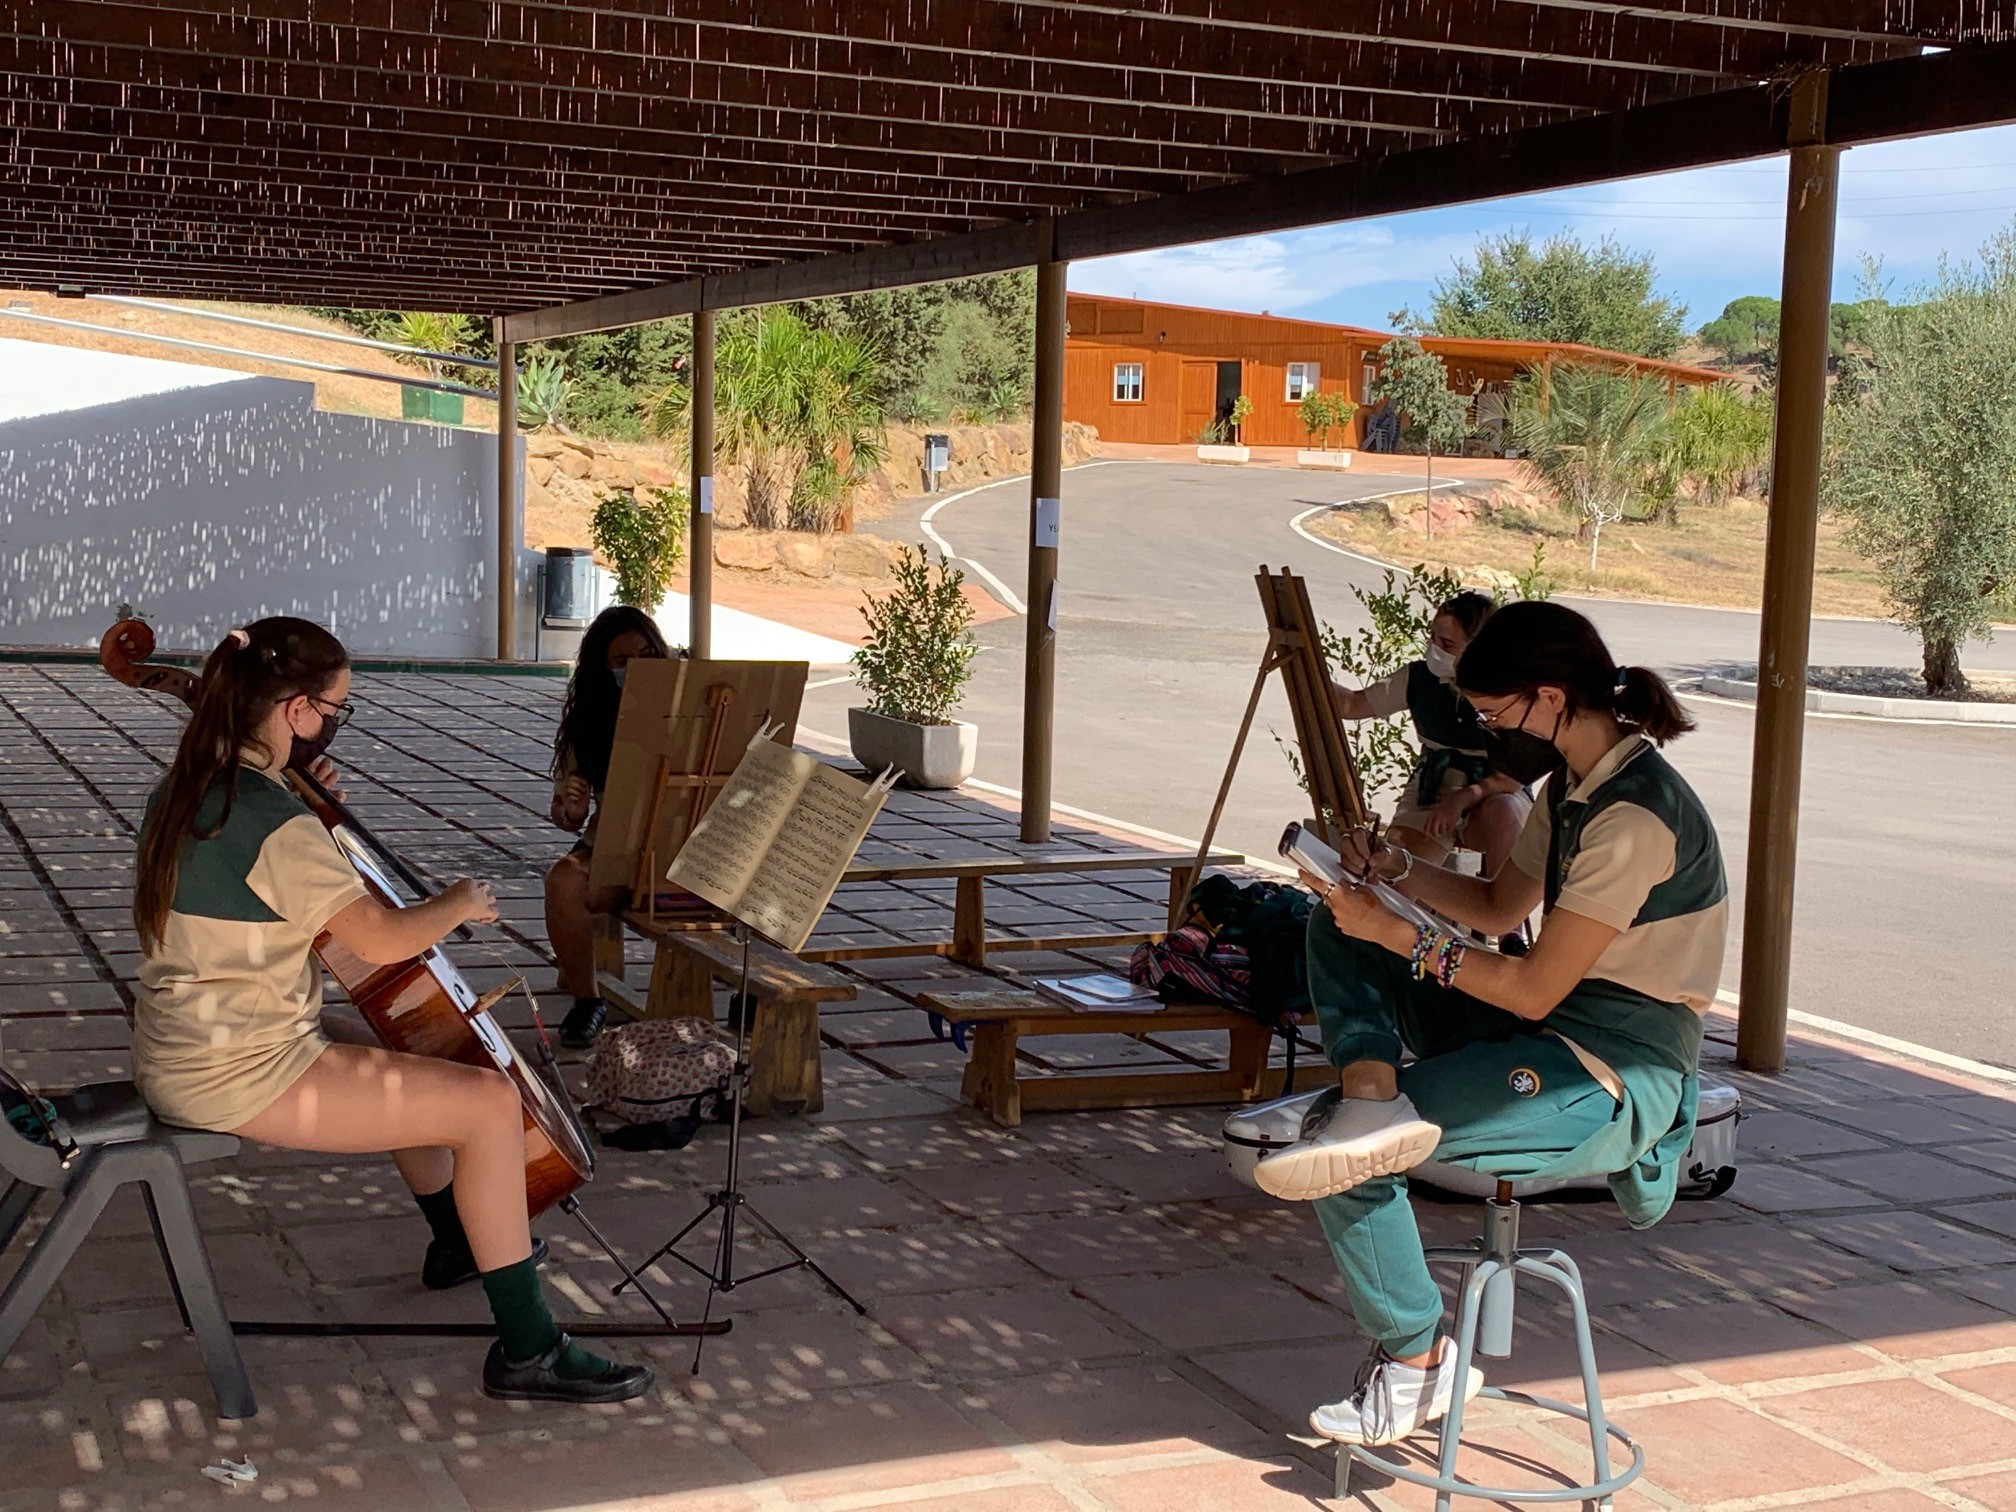 Life drawing outside with classical accompaniment